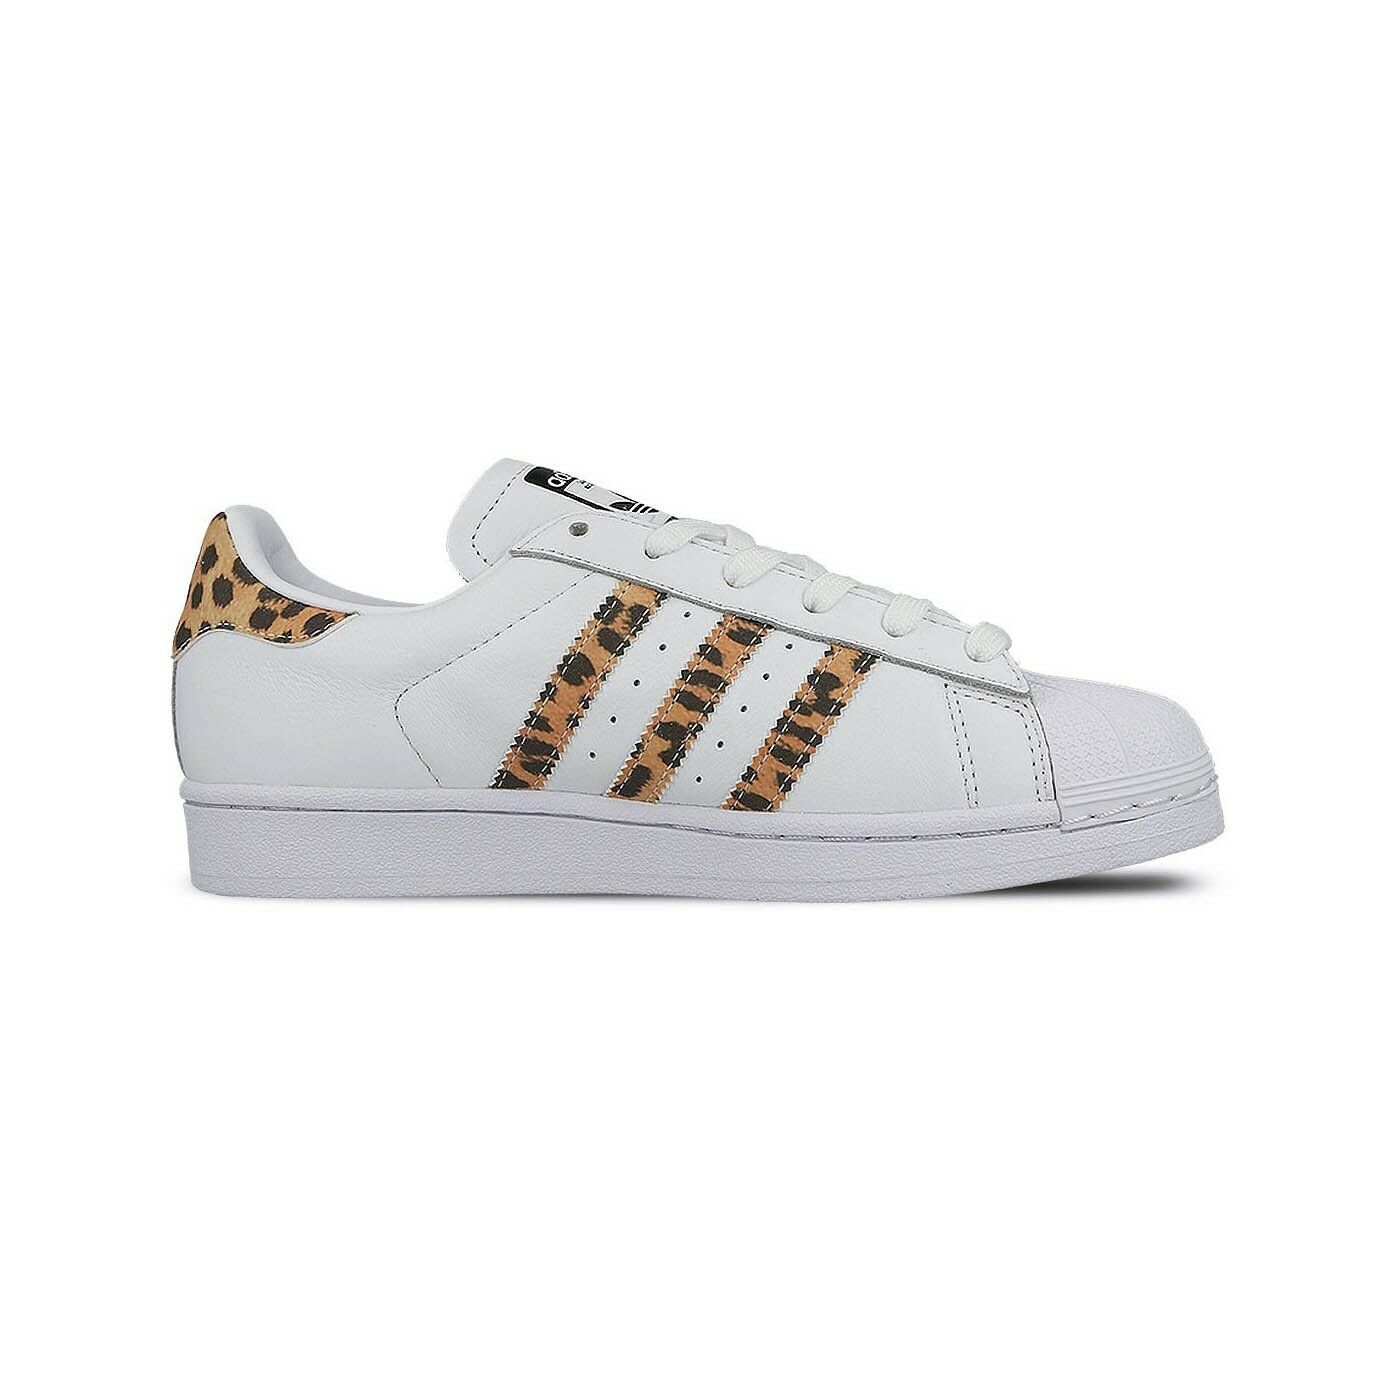 Adidas Superstar White Womens Sneakers CQ2514